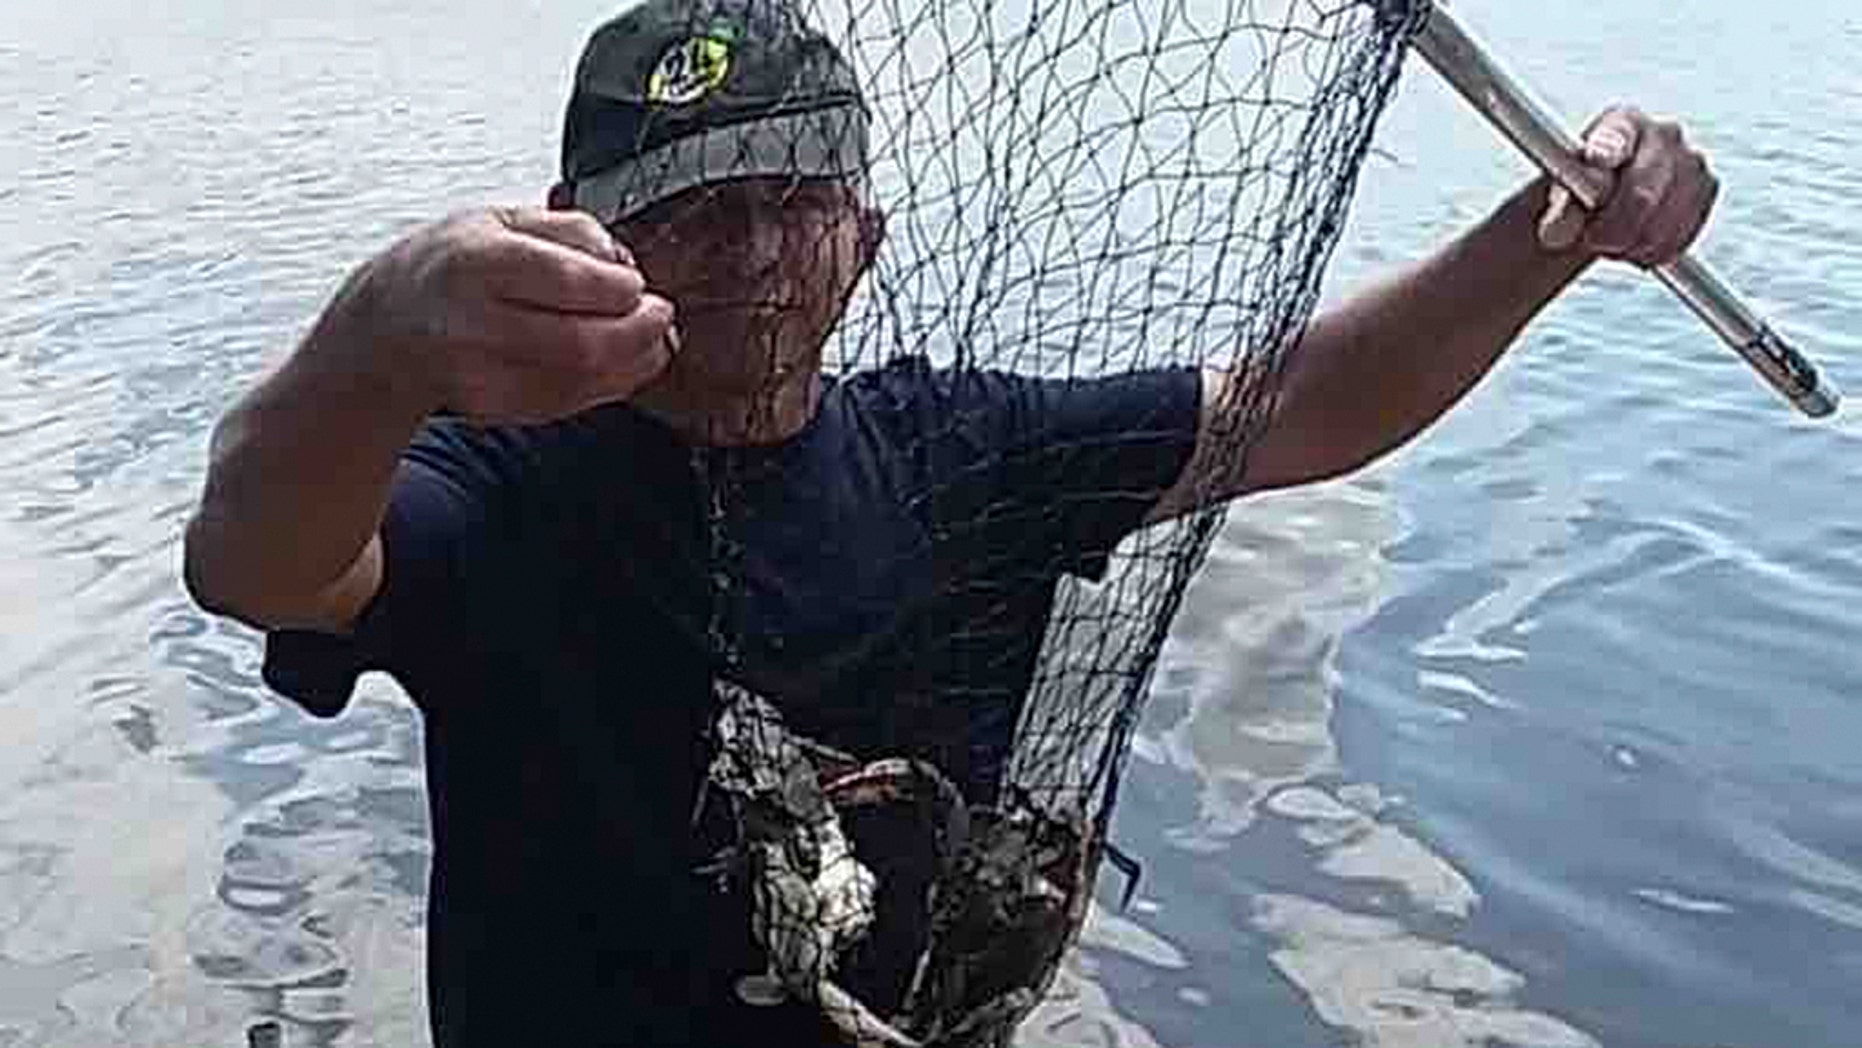 Angel Perez, who contracted a flesh-eating bacteria after crabbing, is going to continue fighting for his life rather than move to hospice care, his family announced.